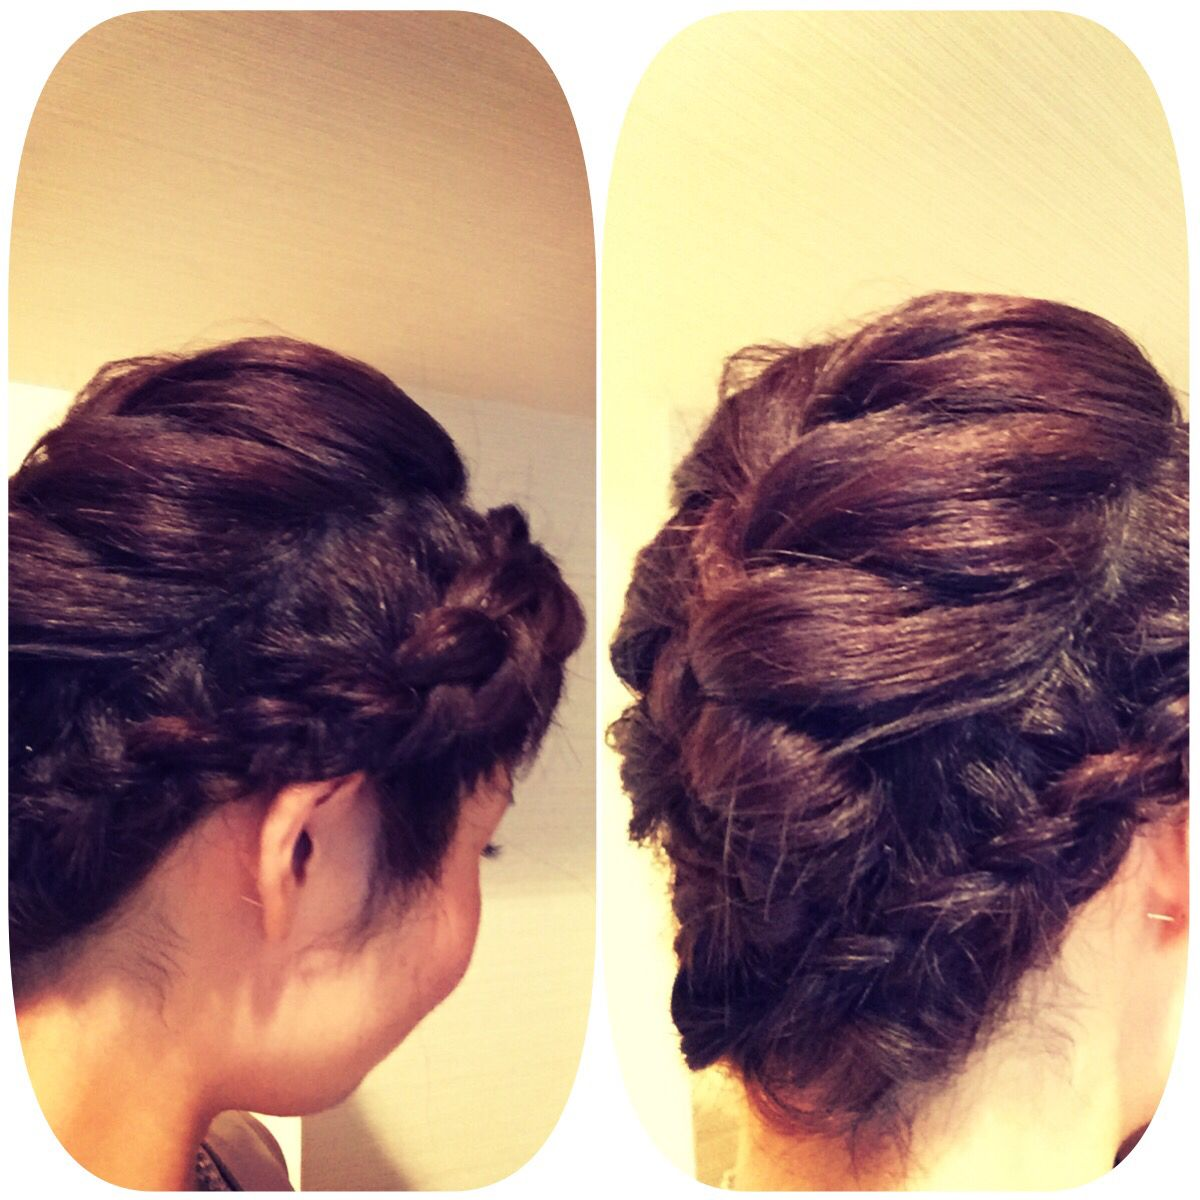 Hair style for a party! Looks like Frozen.